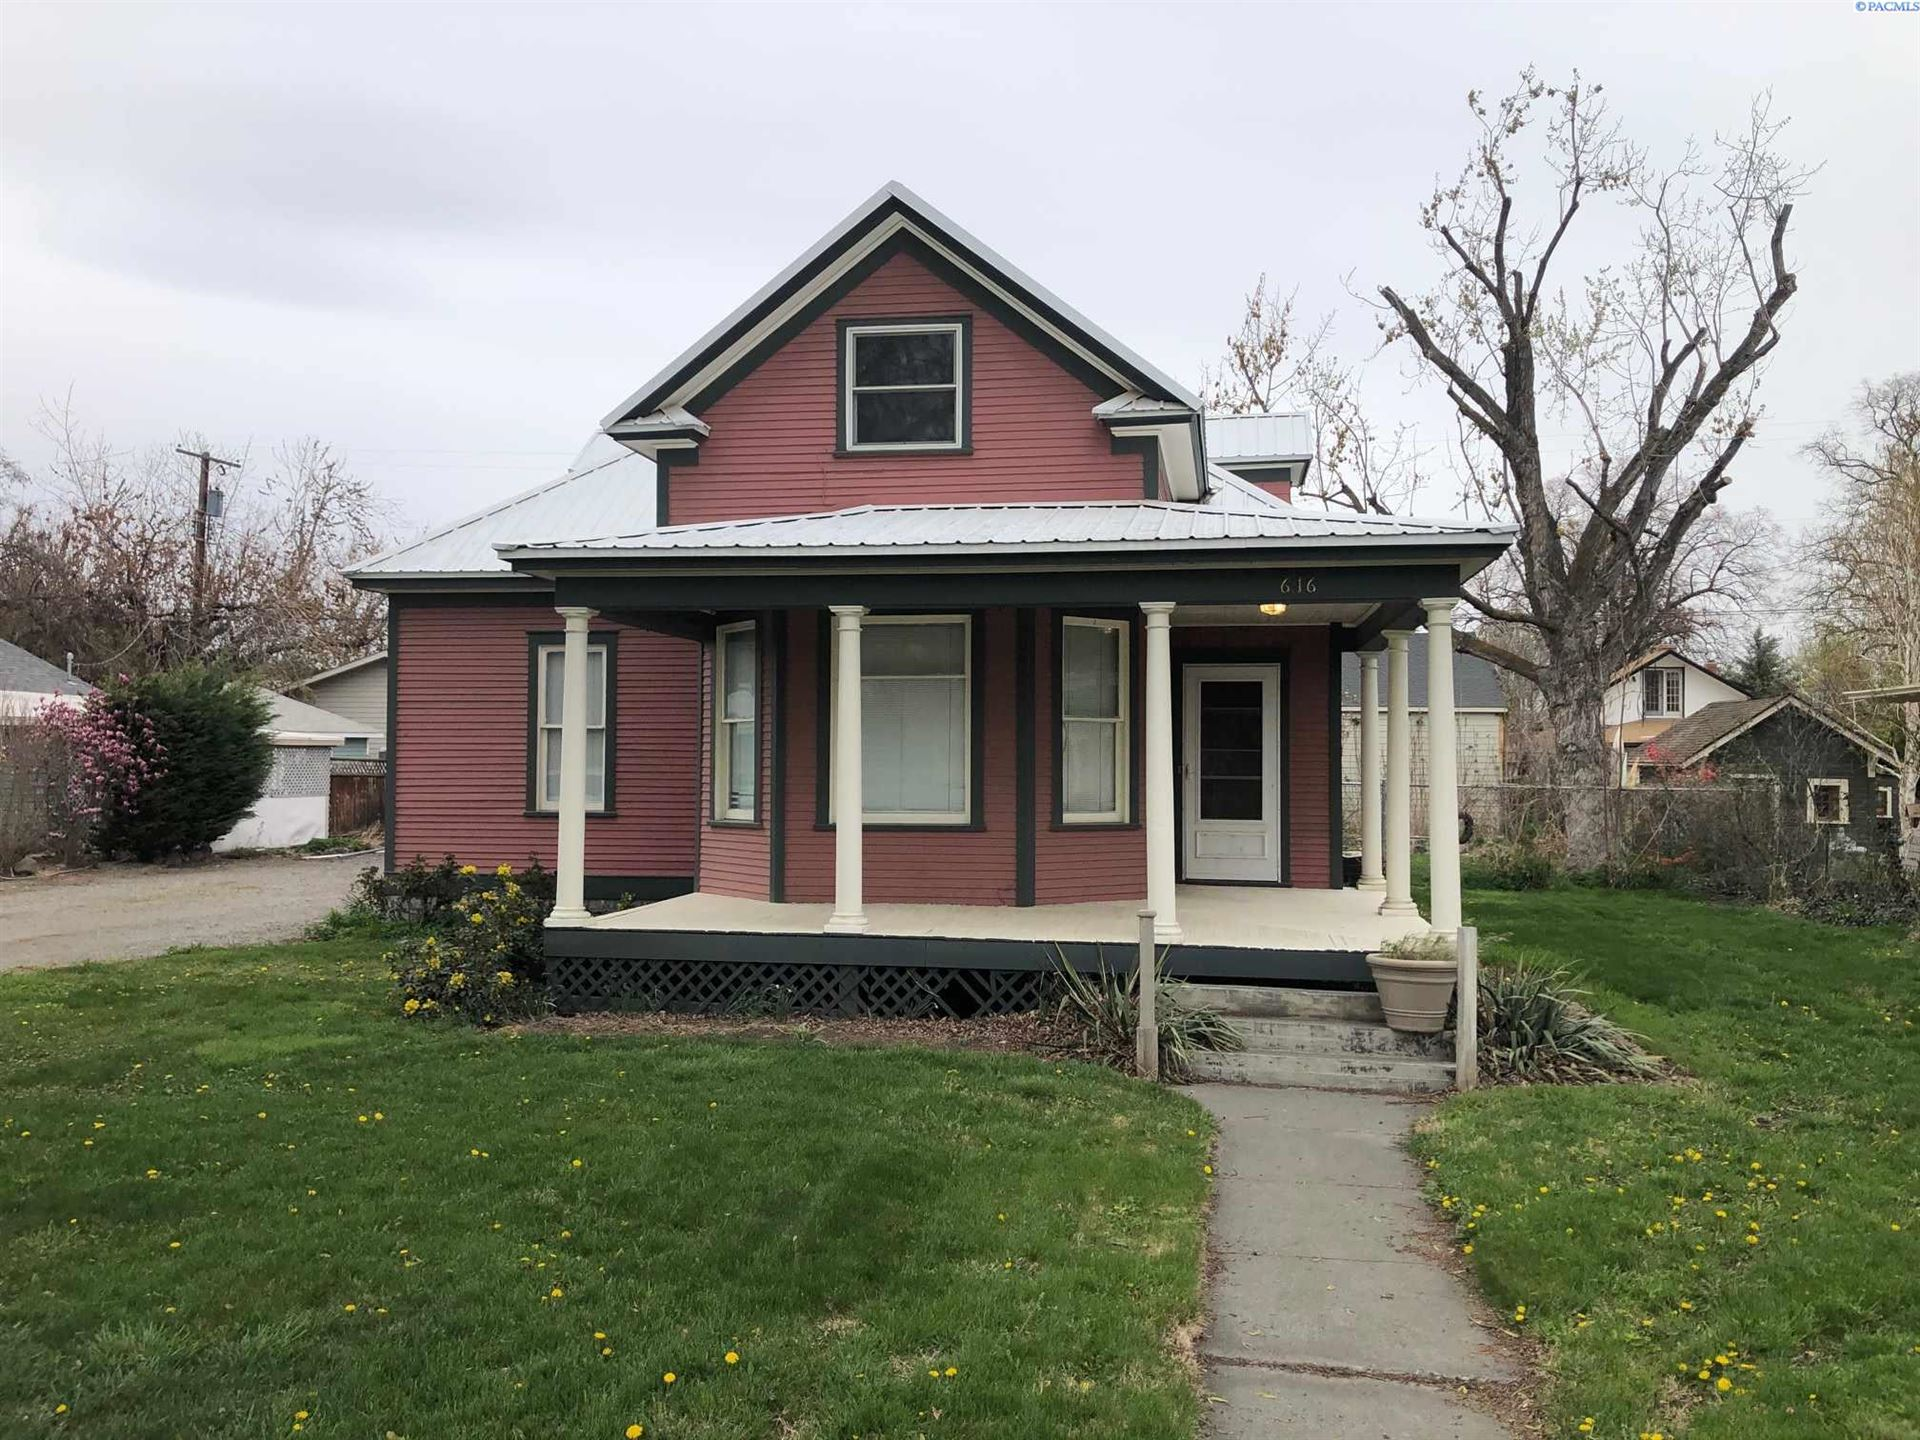 Photo of 616 W Kennewick Ave, Kennewick, WA 99336 (MLS # 252875)